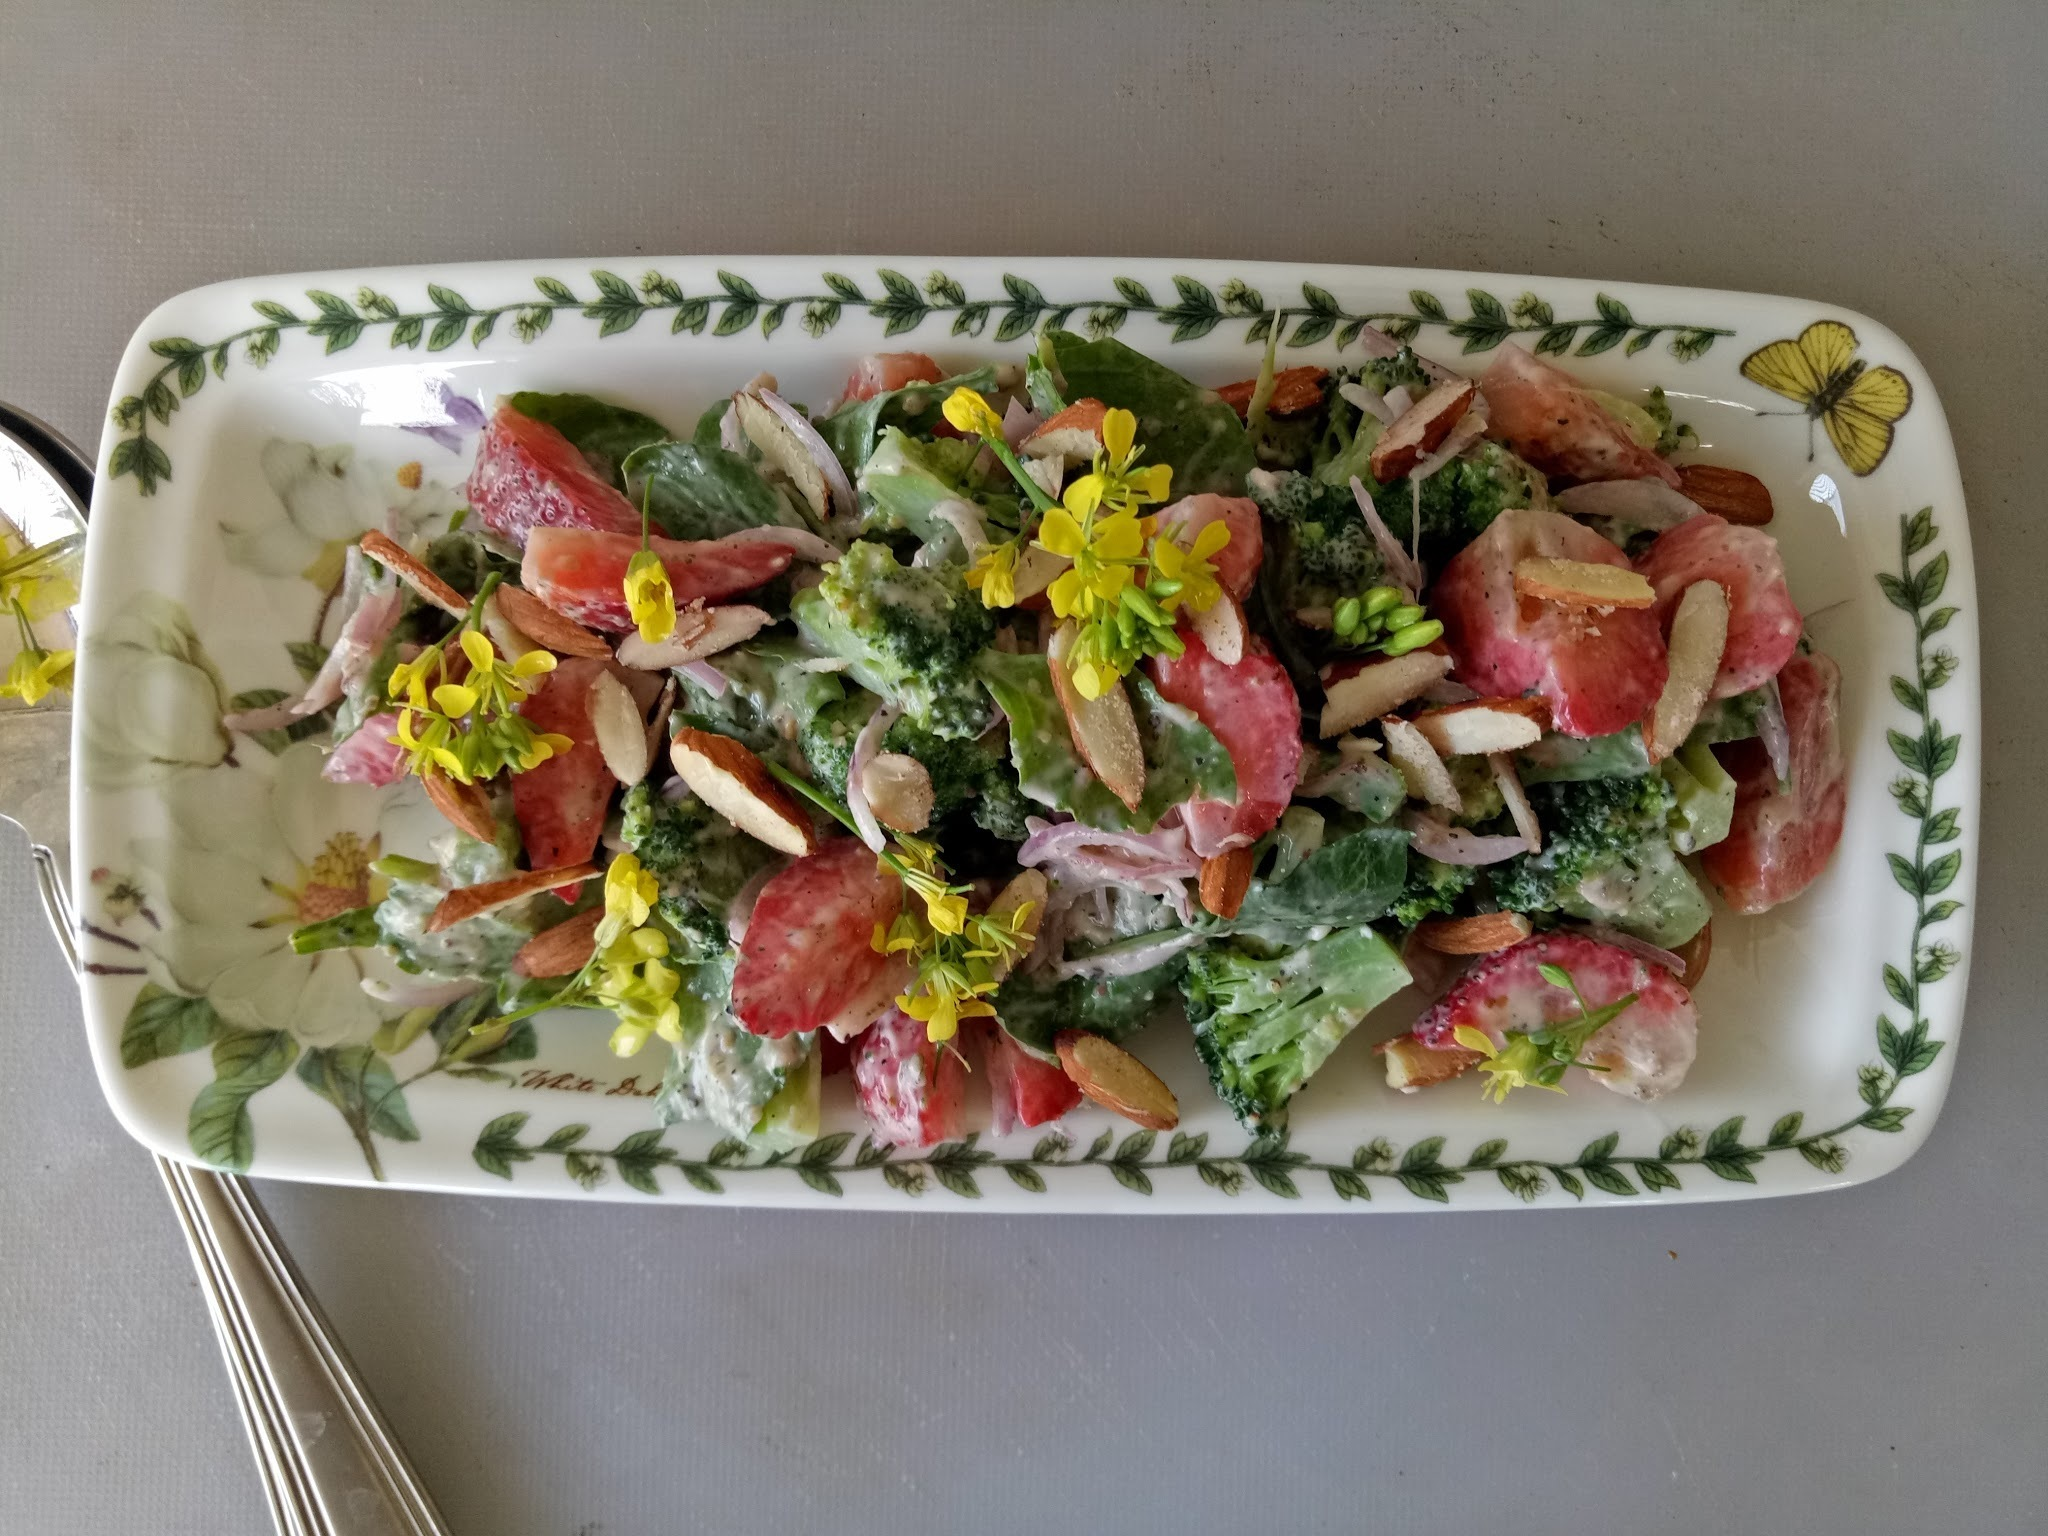 Broccoli & Strawberry Salad With Sweet Bavarian Mustard Dressing